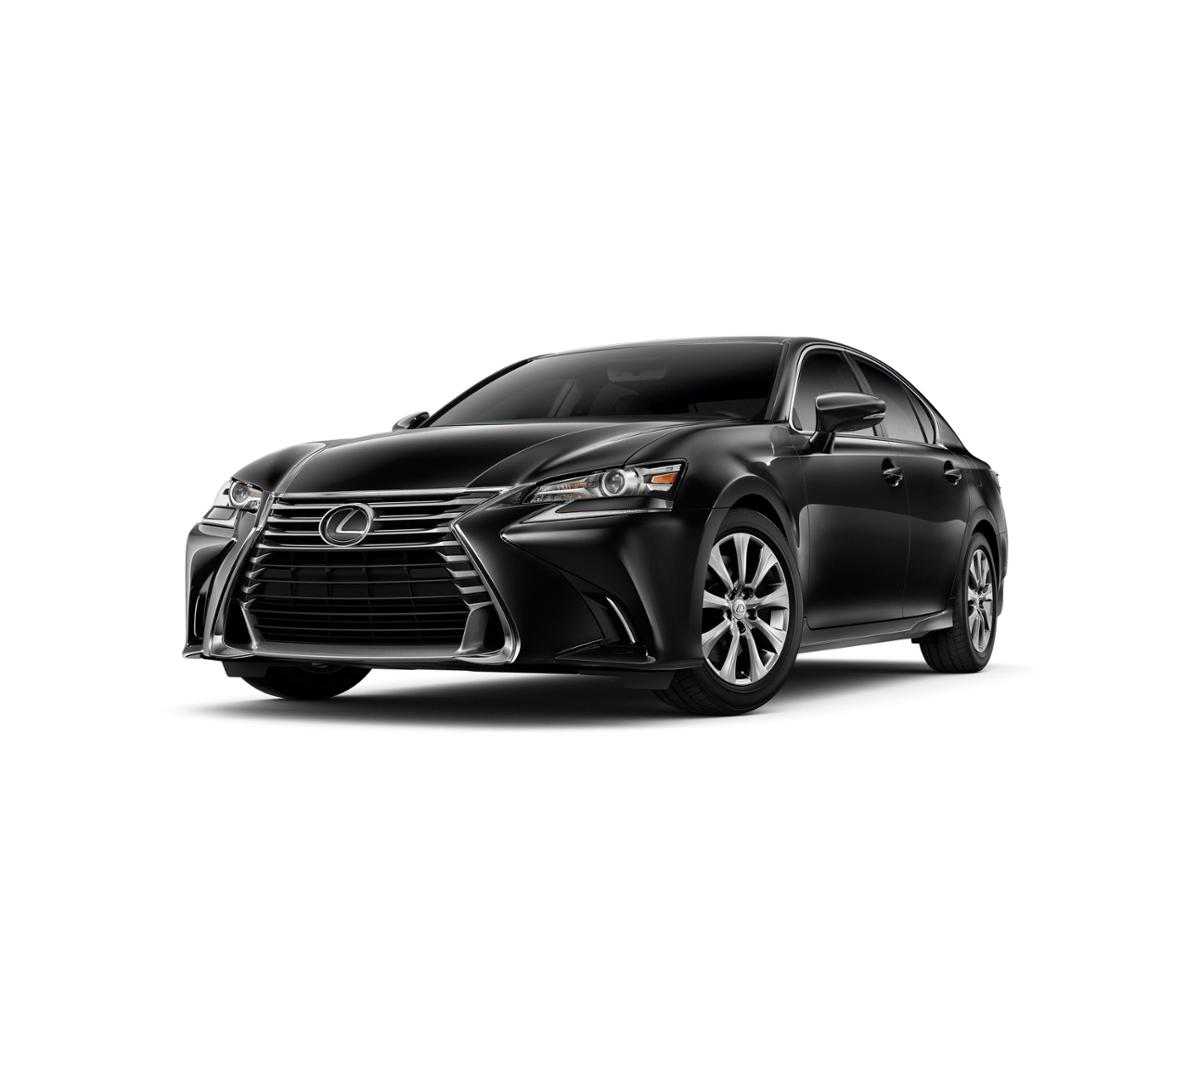 2017 Lexus GS 350 Vehicle Photo in Santa Barbara, CA 93105